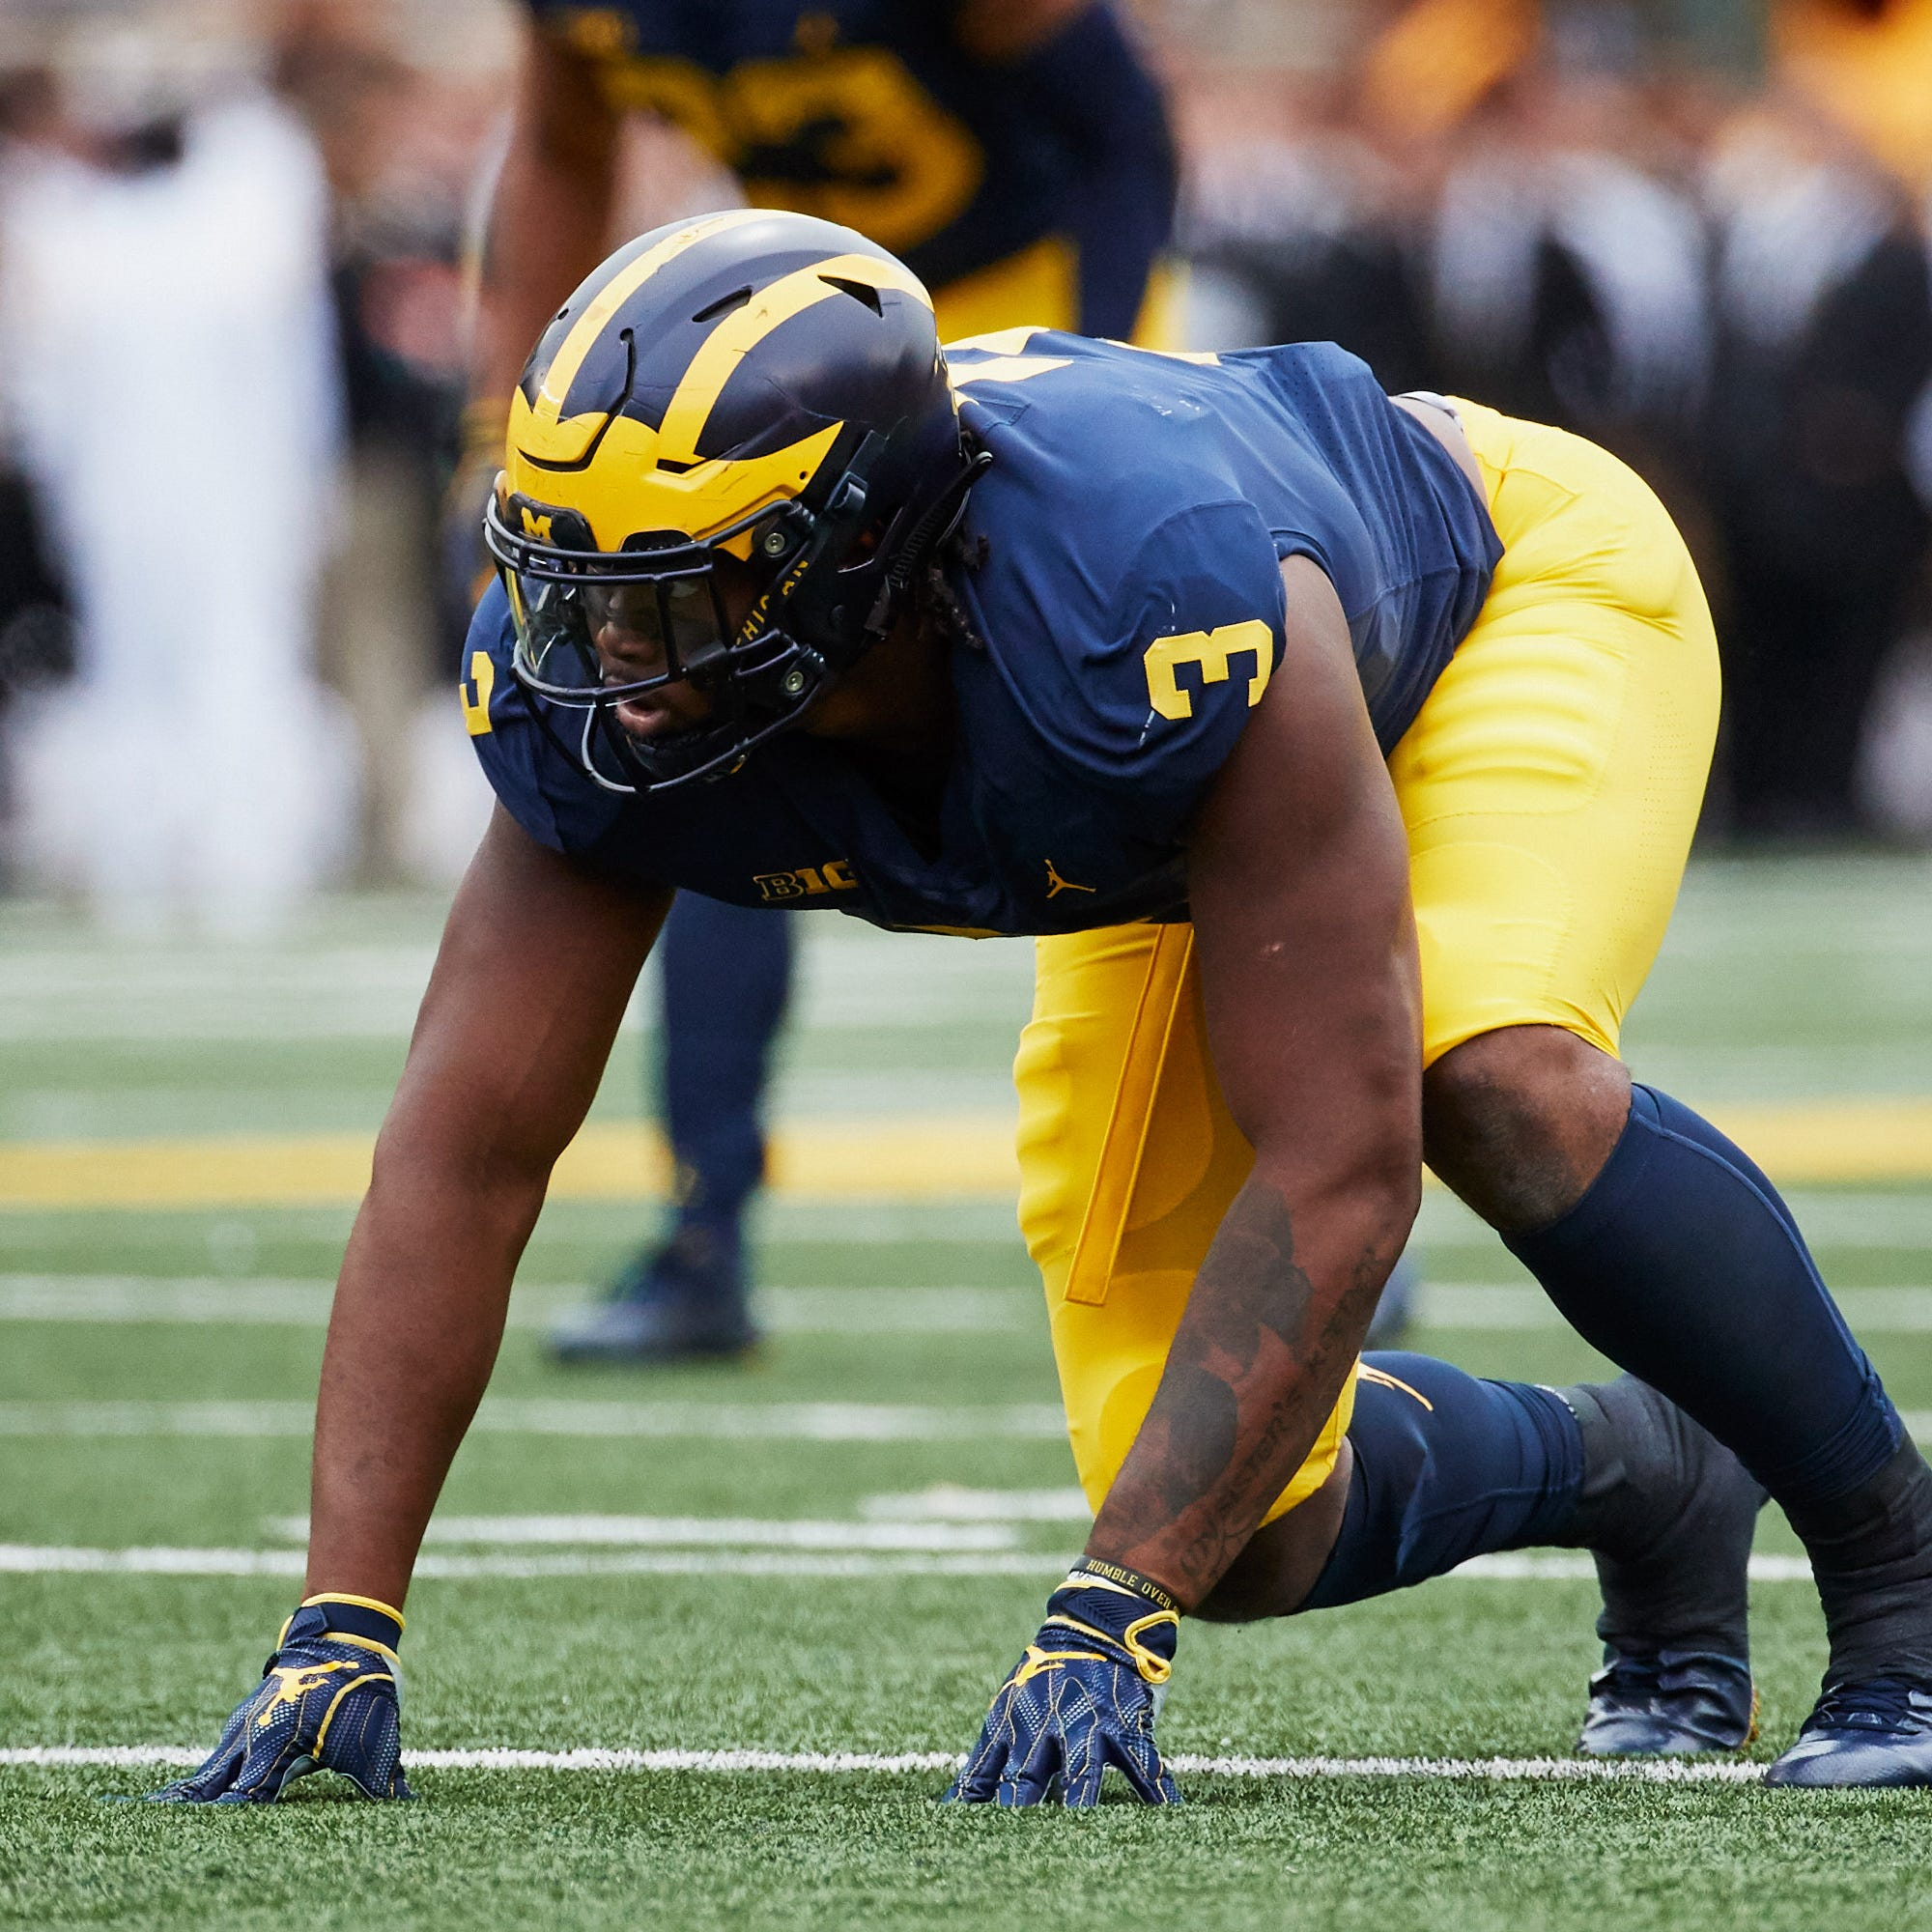 Michigan football DL Rashan Gary drafted by Green Bay Packers at No. 12